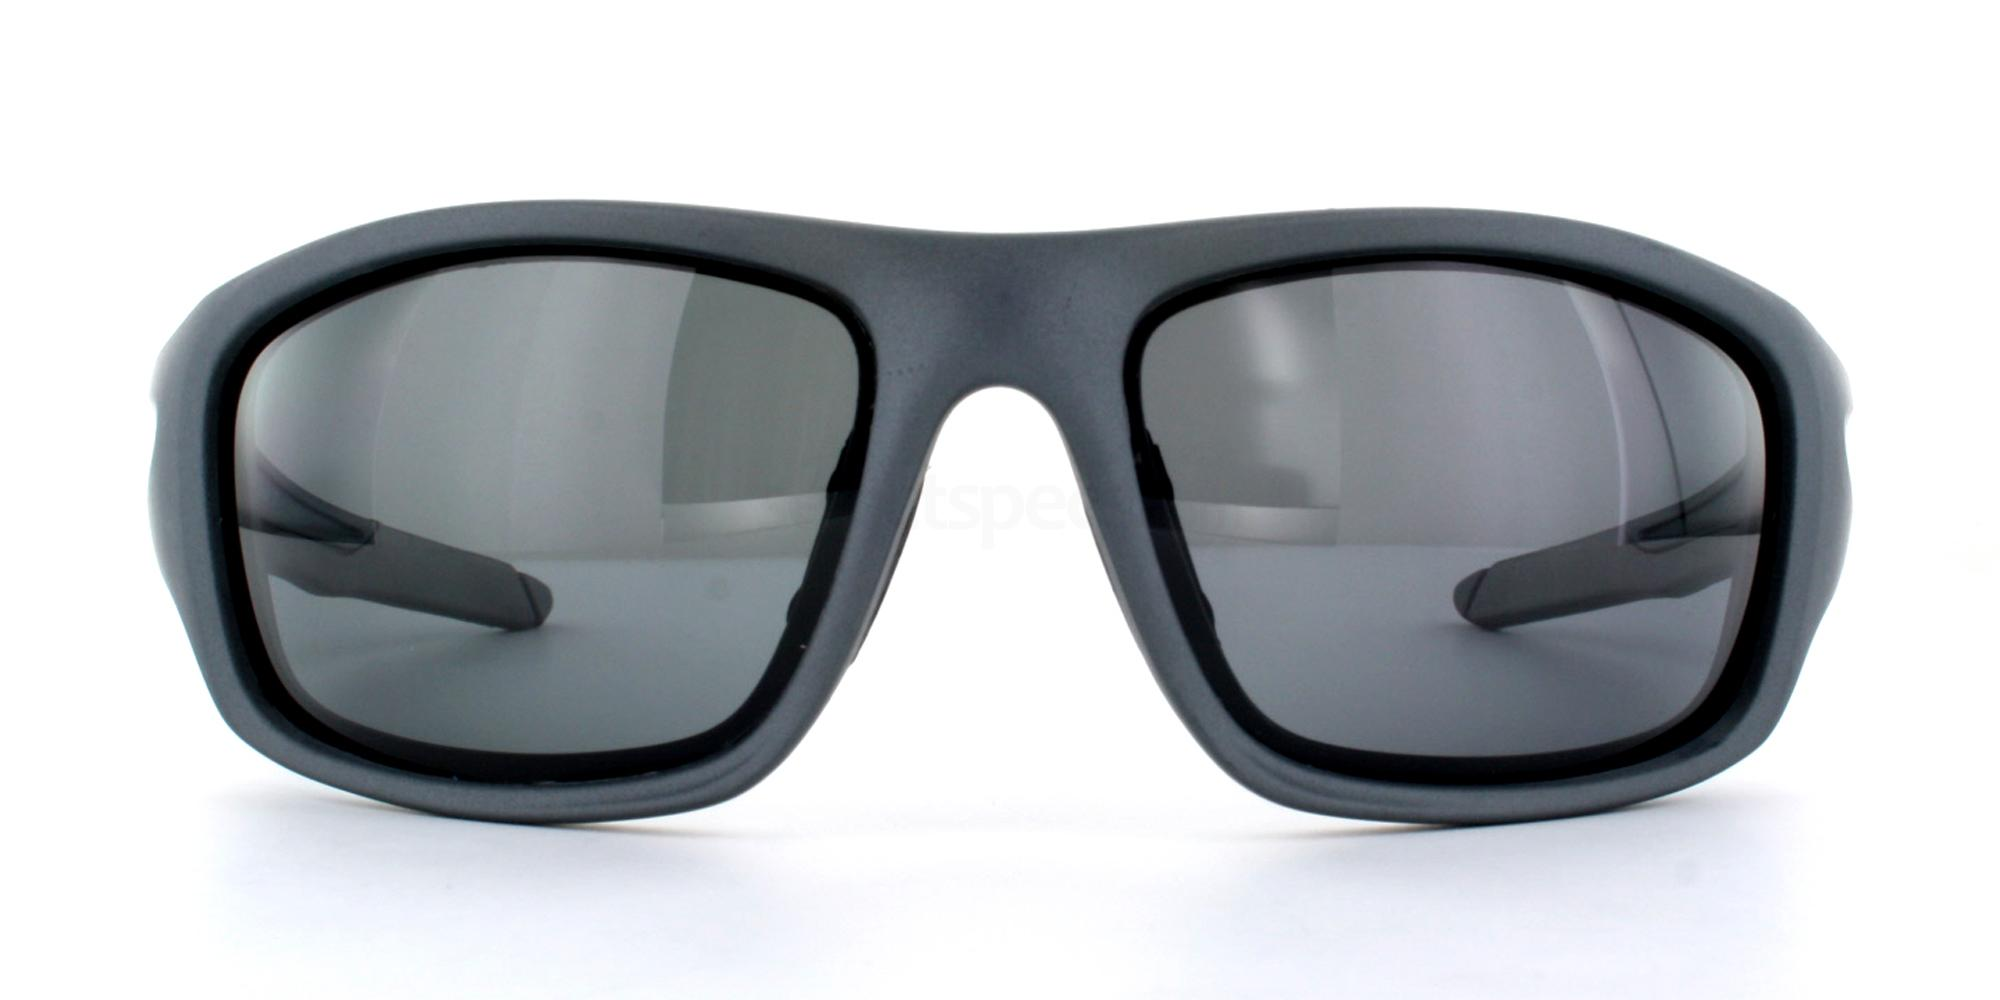 Matte Grey/Black +Grey Lens P5009 Sunglasses, Aero